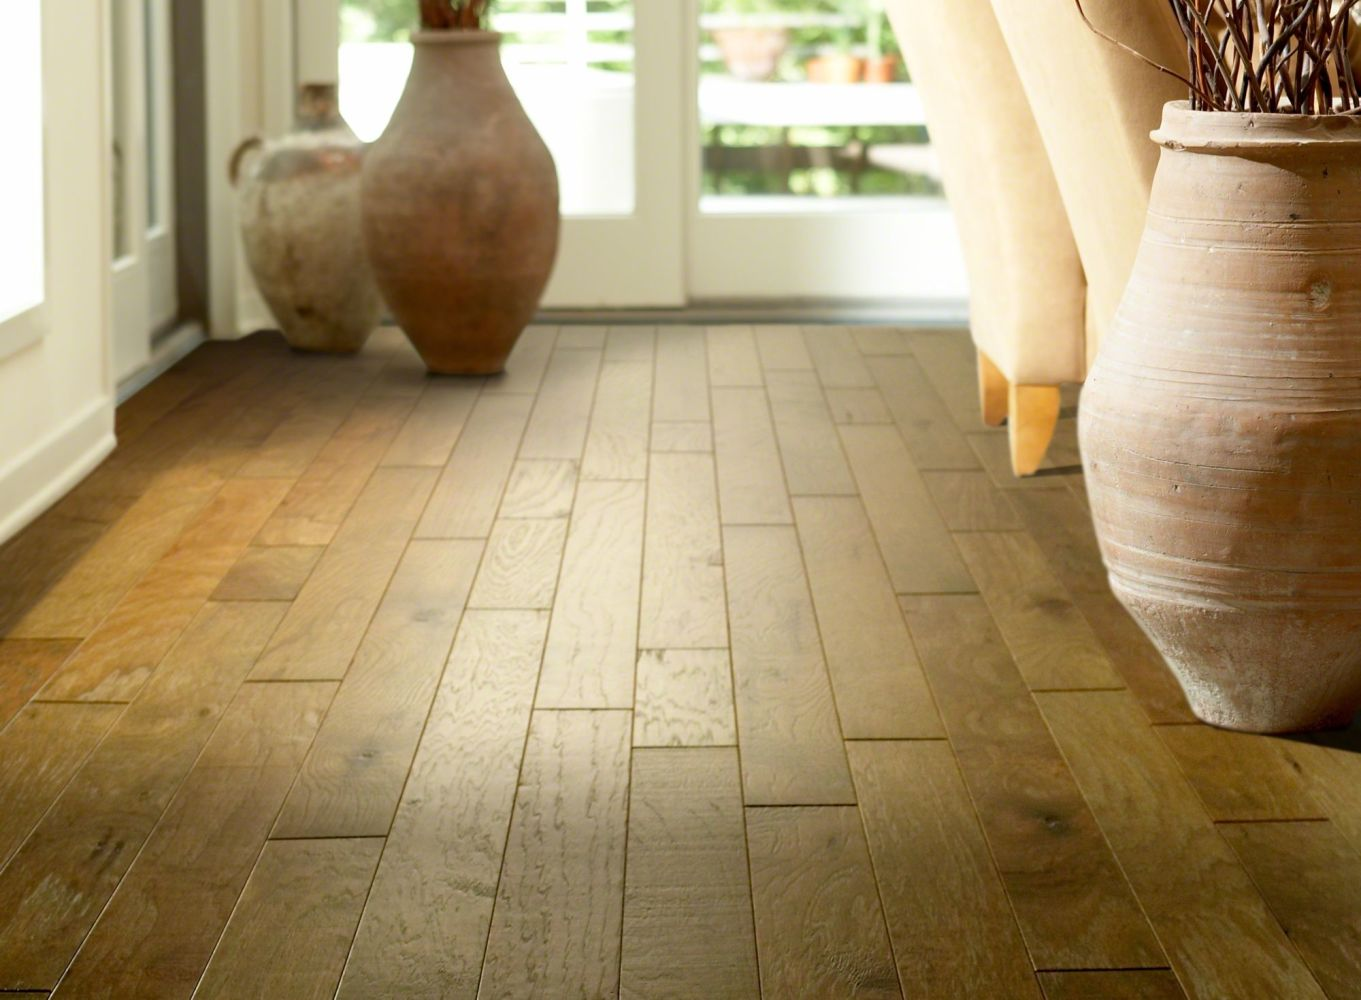 Shaw Floors Home Fn Gold Hardwood Natchez Olive Branch 00308_HW226